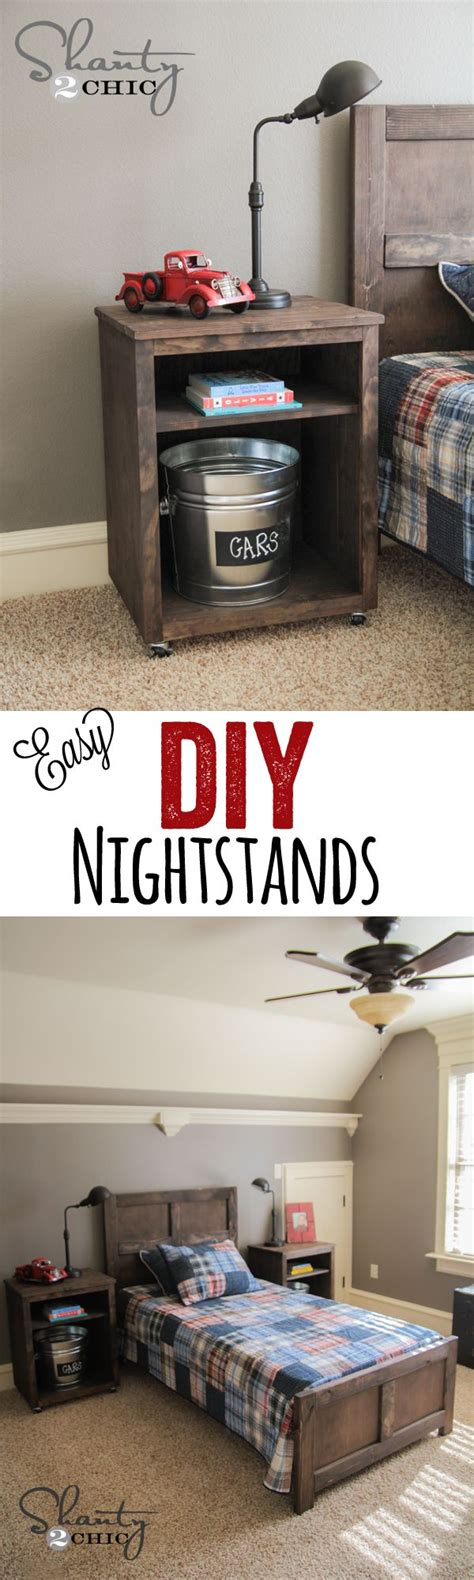 Cute And Easy Diy Nightstands… Love These! Wwwshanty2